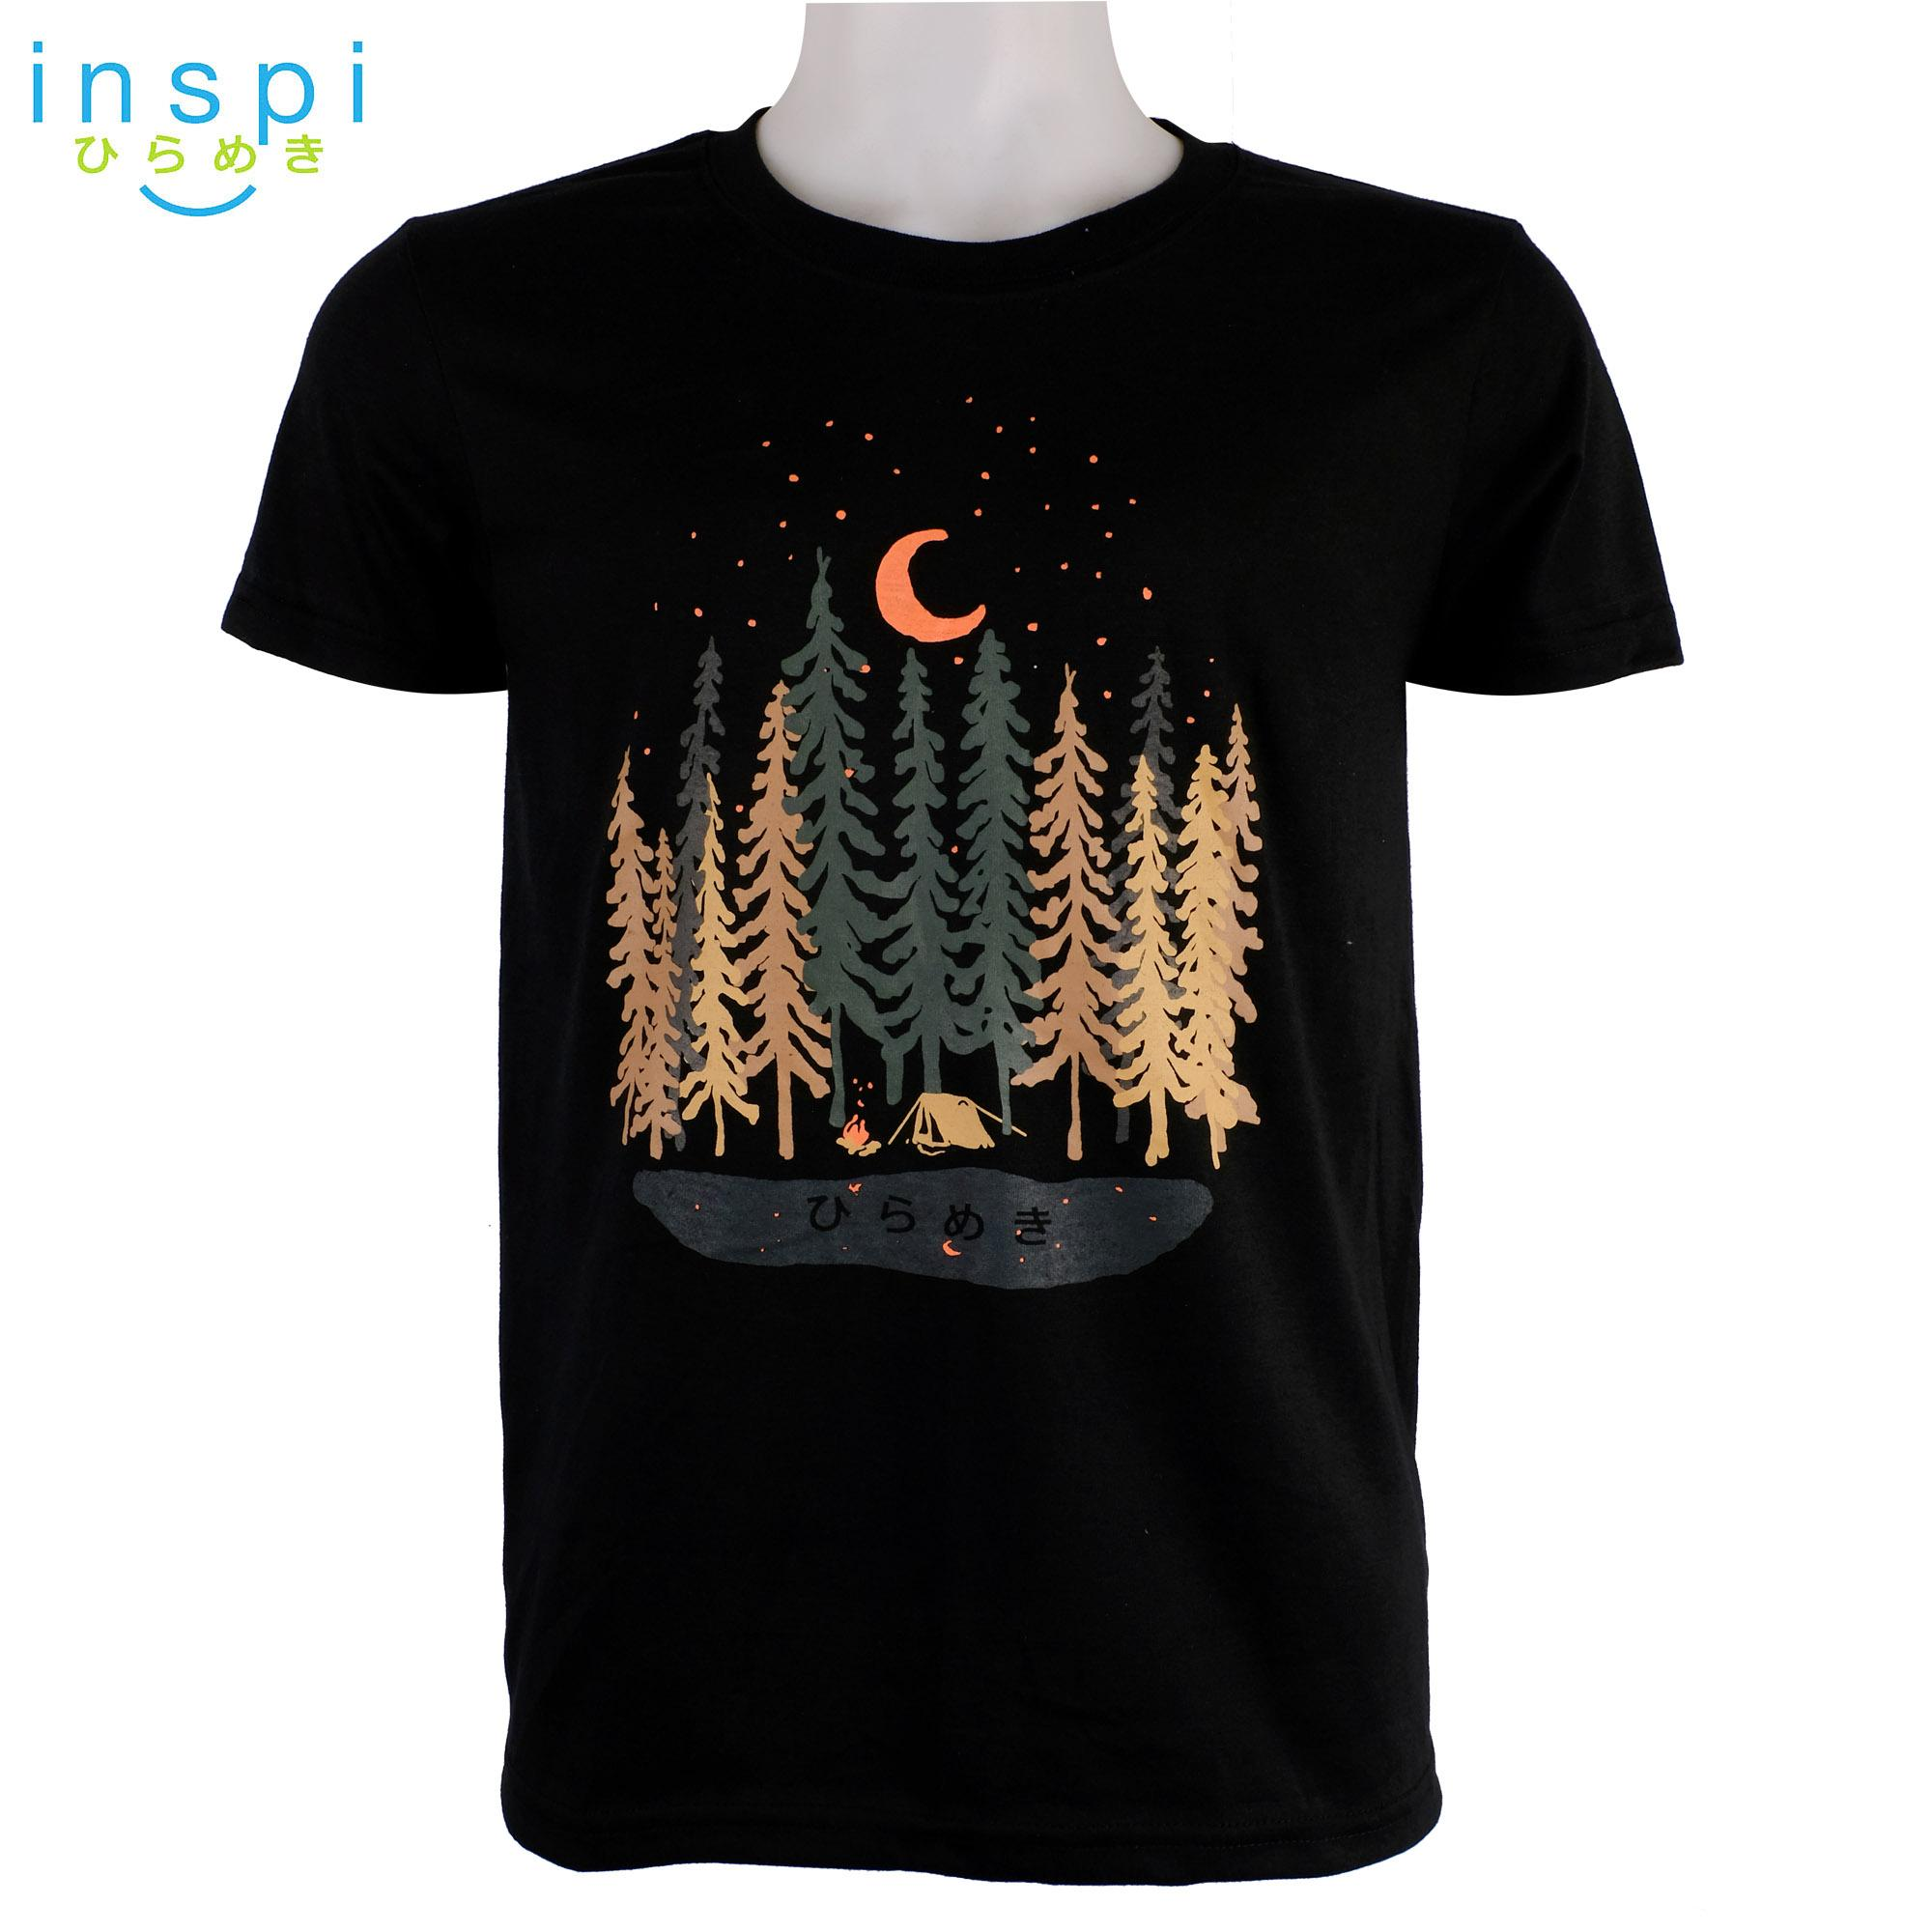 09ad67926877 INSPI Tees Camping Forest (Black) tshirt printed graphic tee Mens t shirt  shirts for